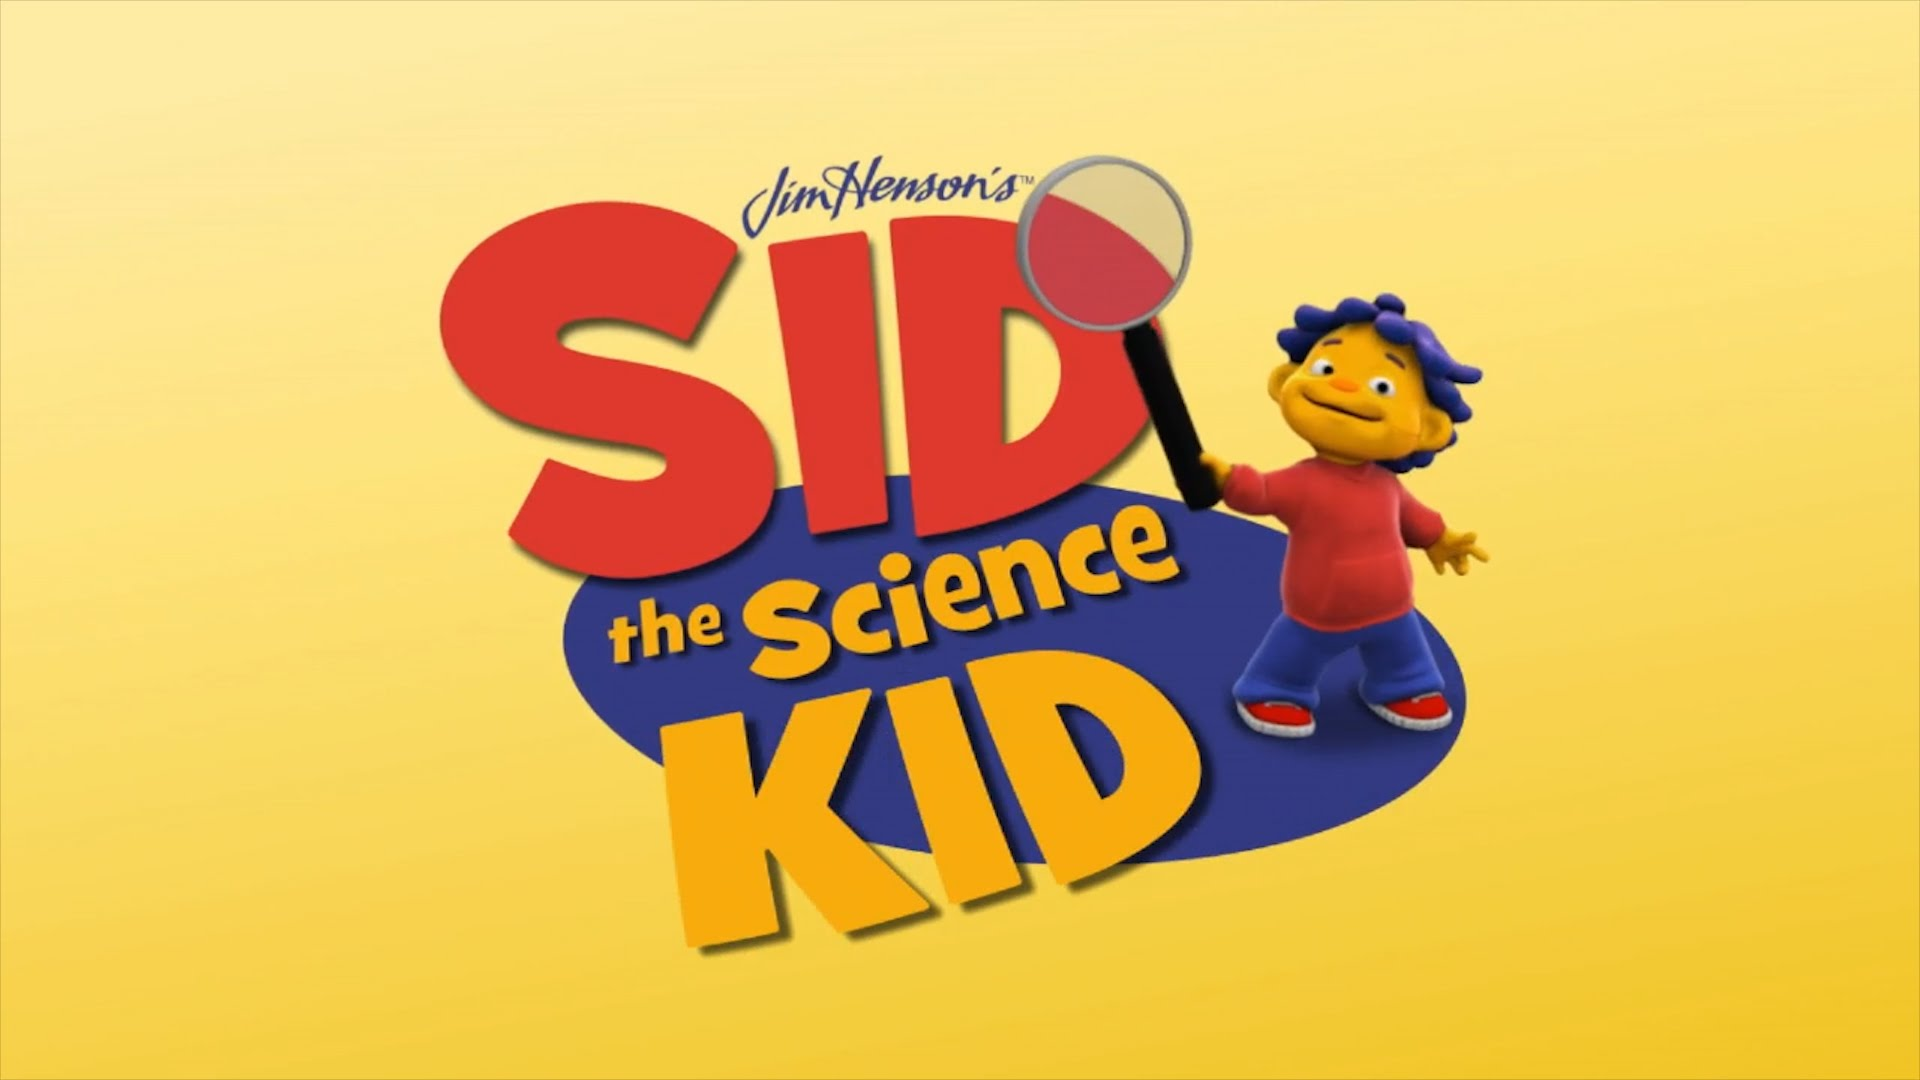 Science Shows for Kids to Watch